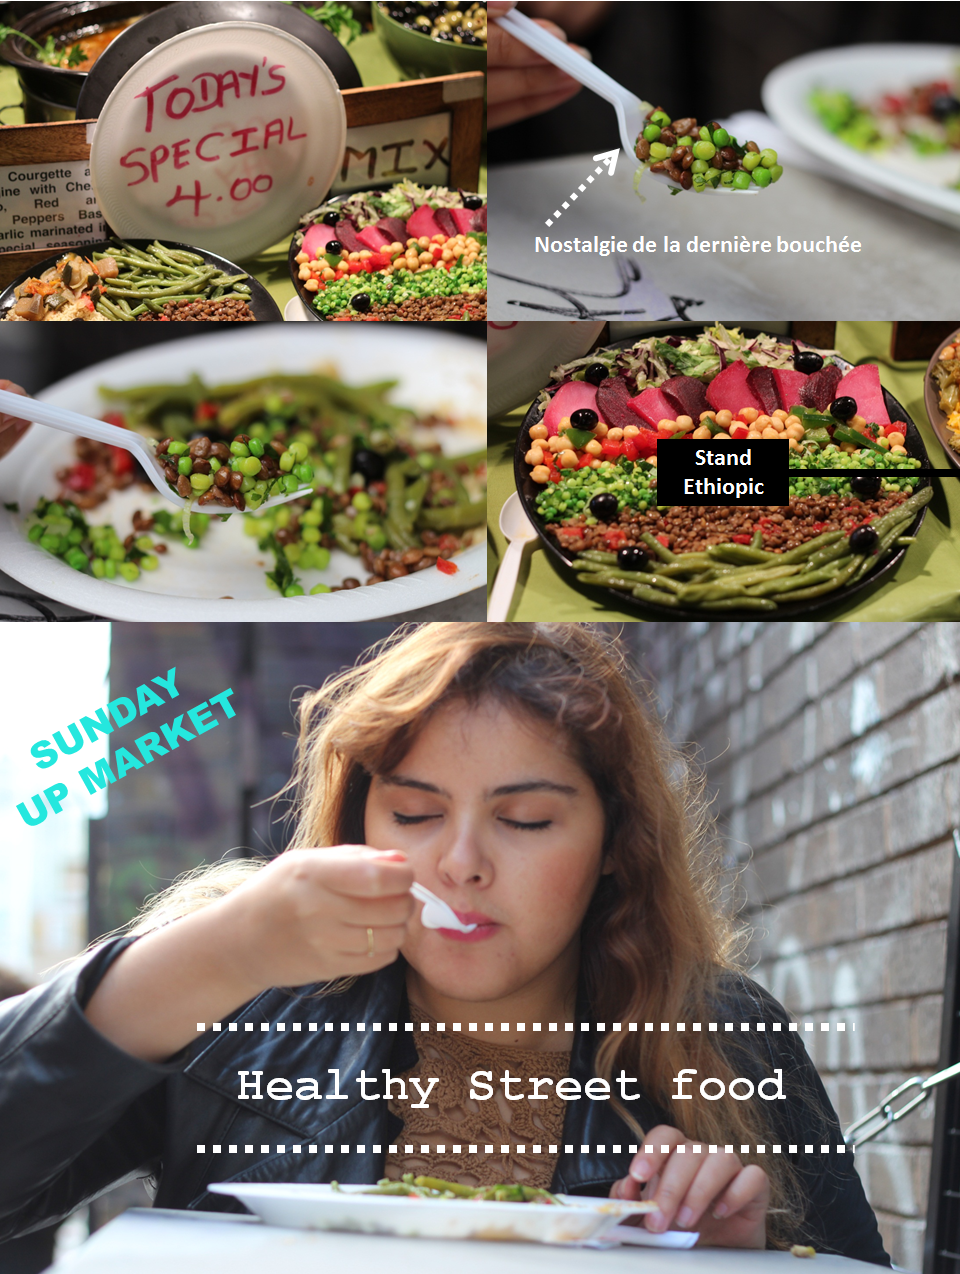 meilleures_adresses_healthy_veggie_restaurant_london_manger_sain_londres